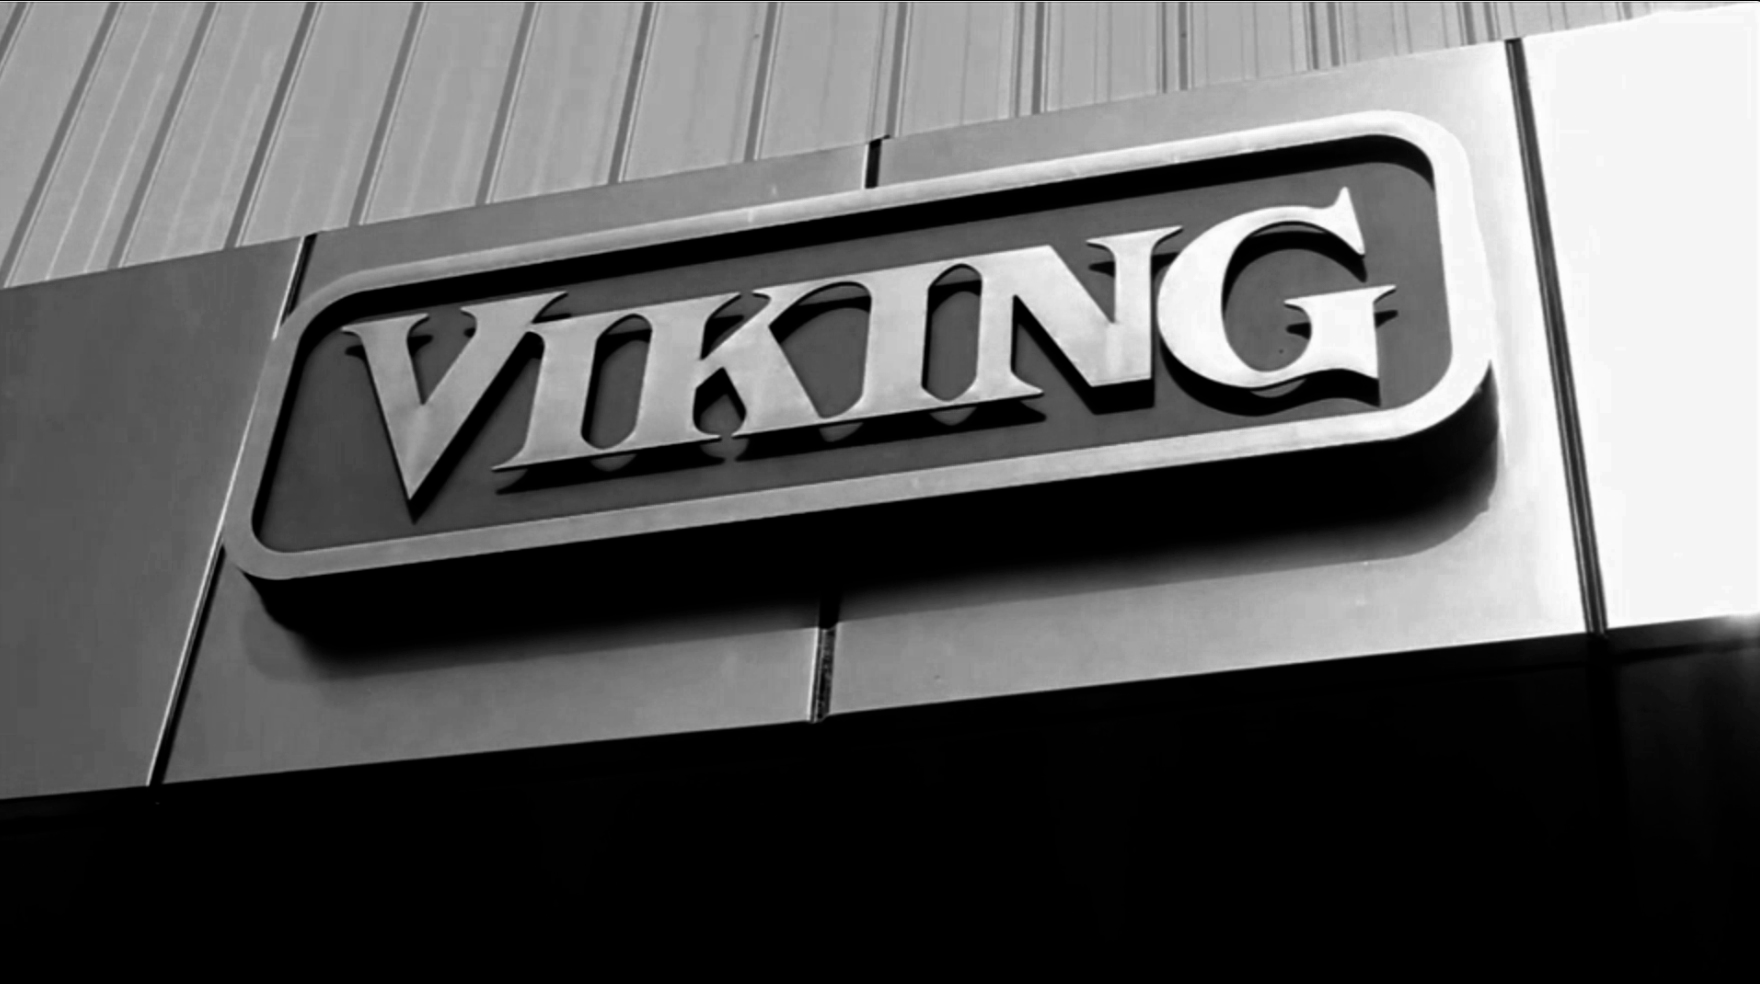 40 Years of Viking Pride